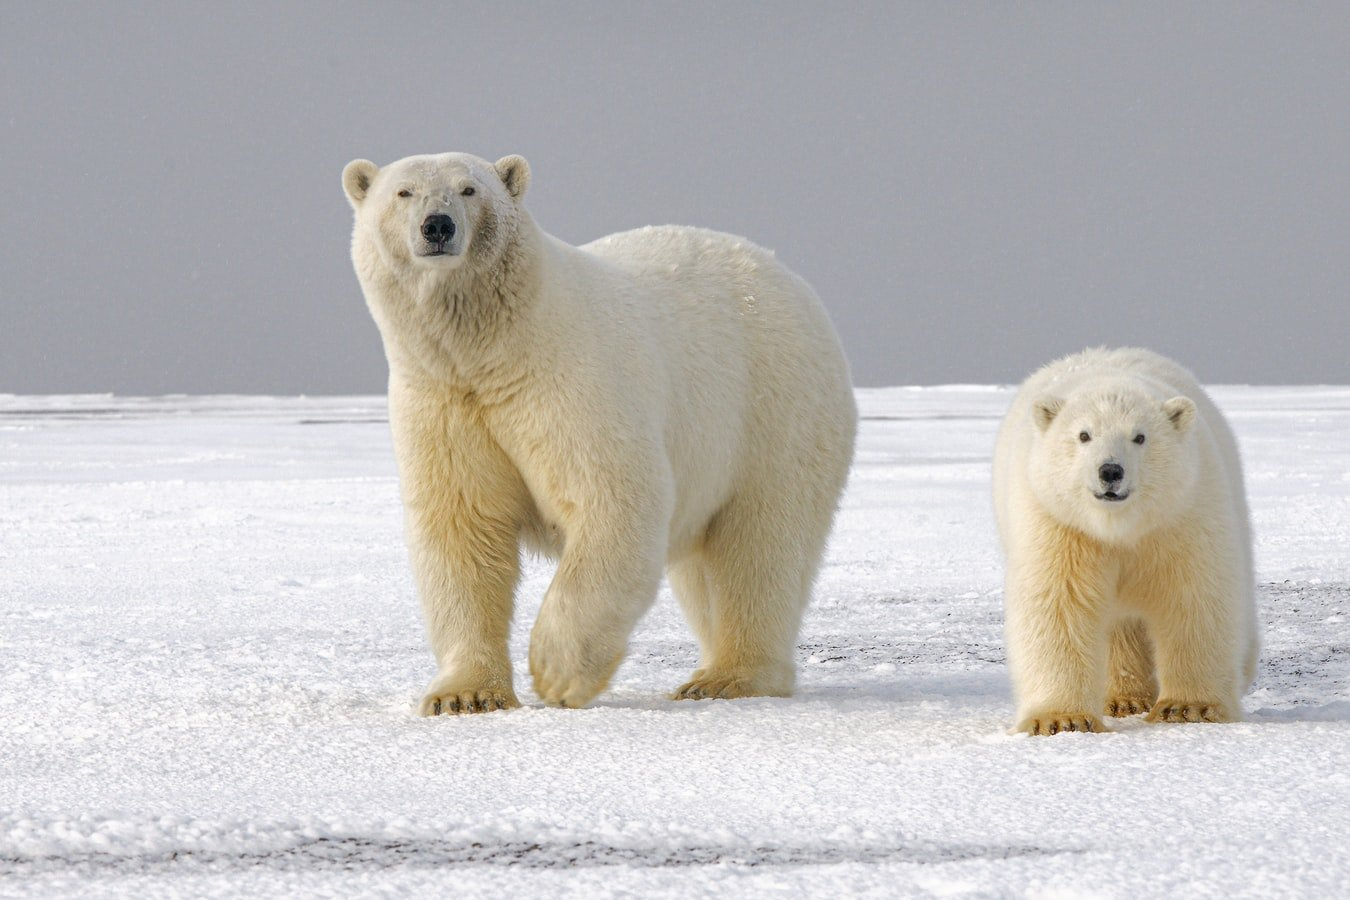 The baby polar bear's questions continued. | Photo: Unsplash